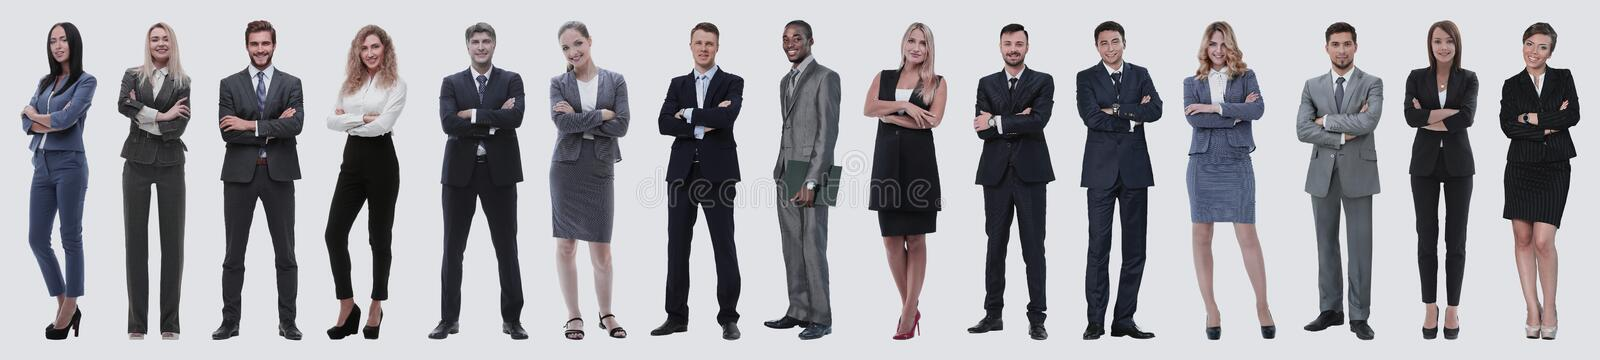 Young attractive business people - the elite business team stock images